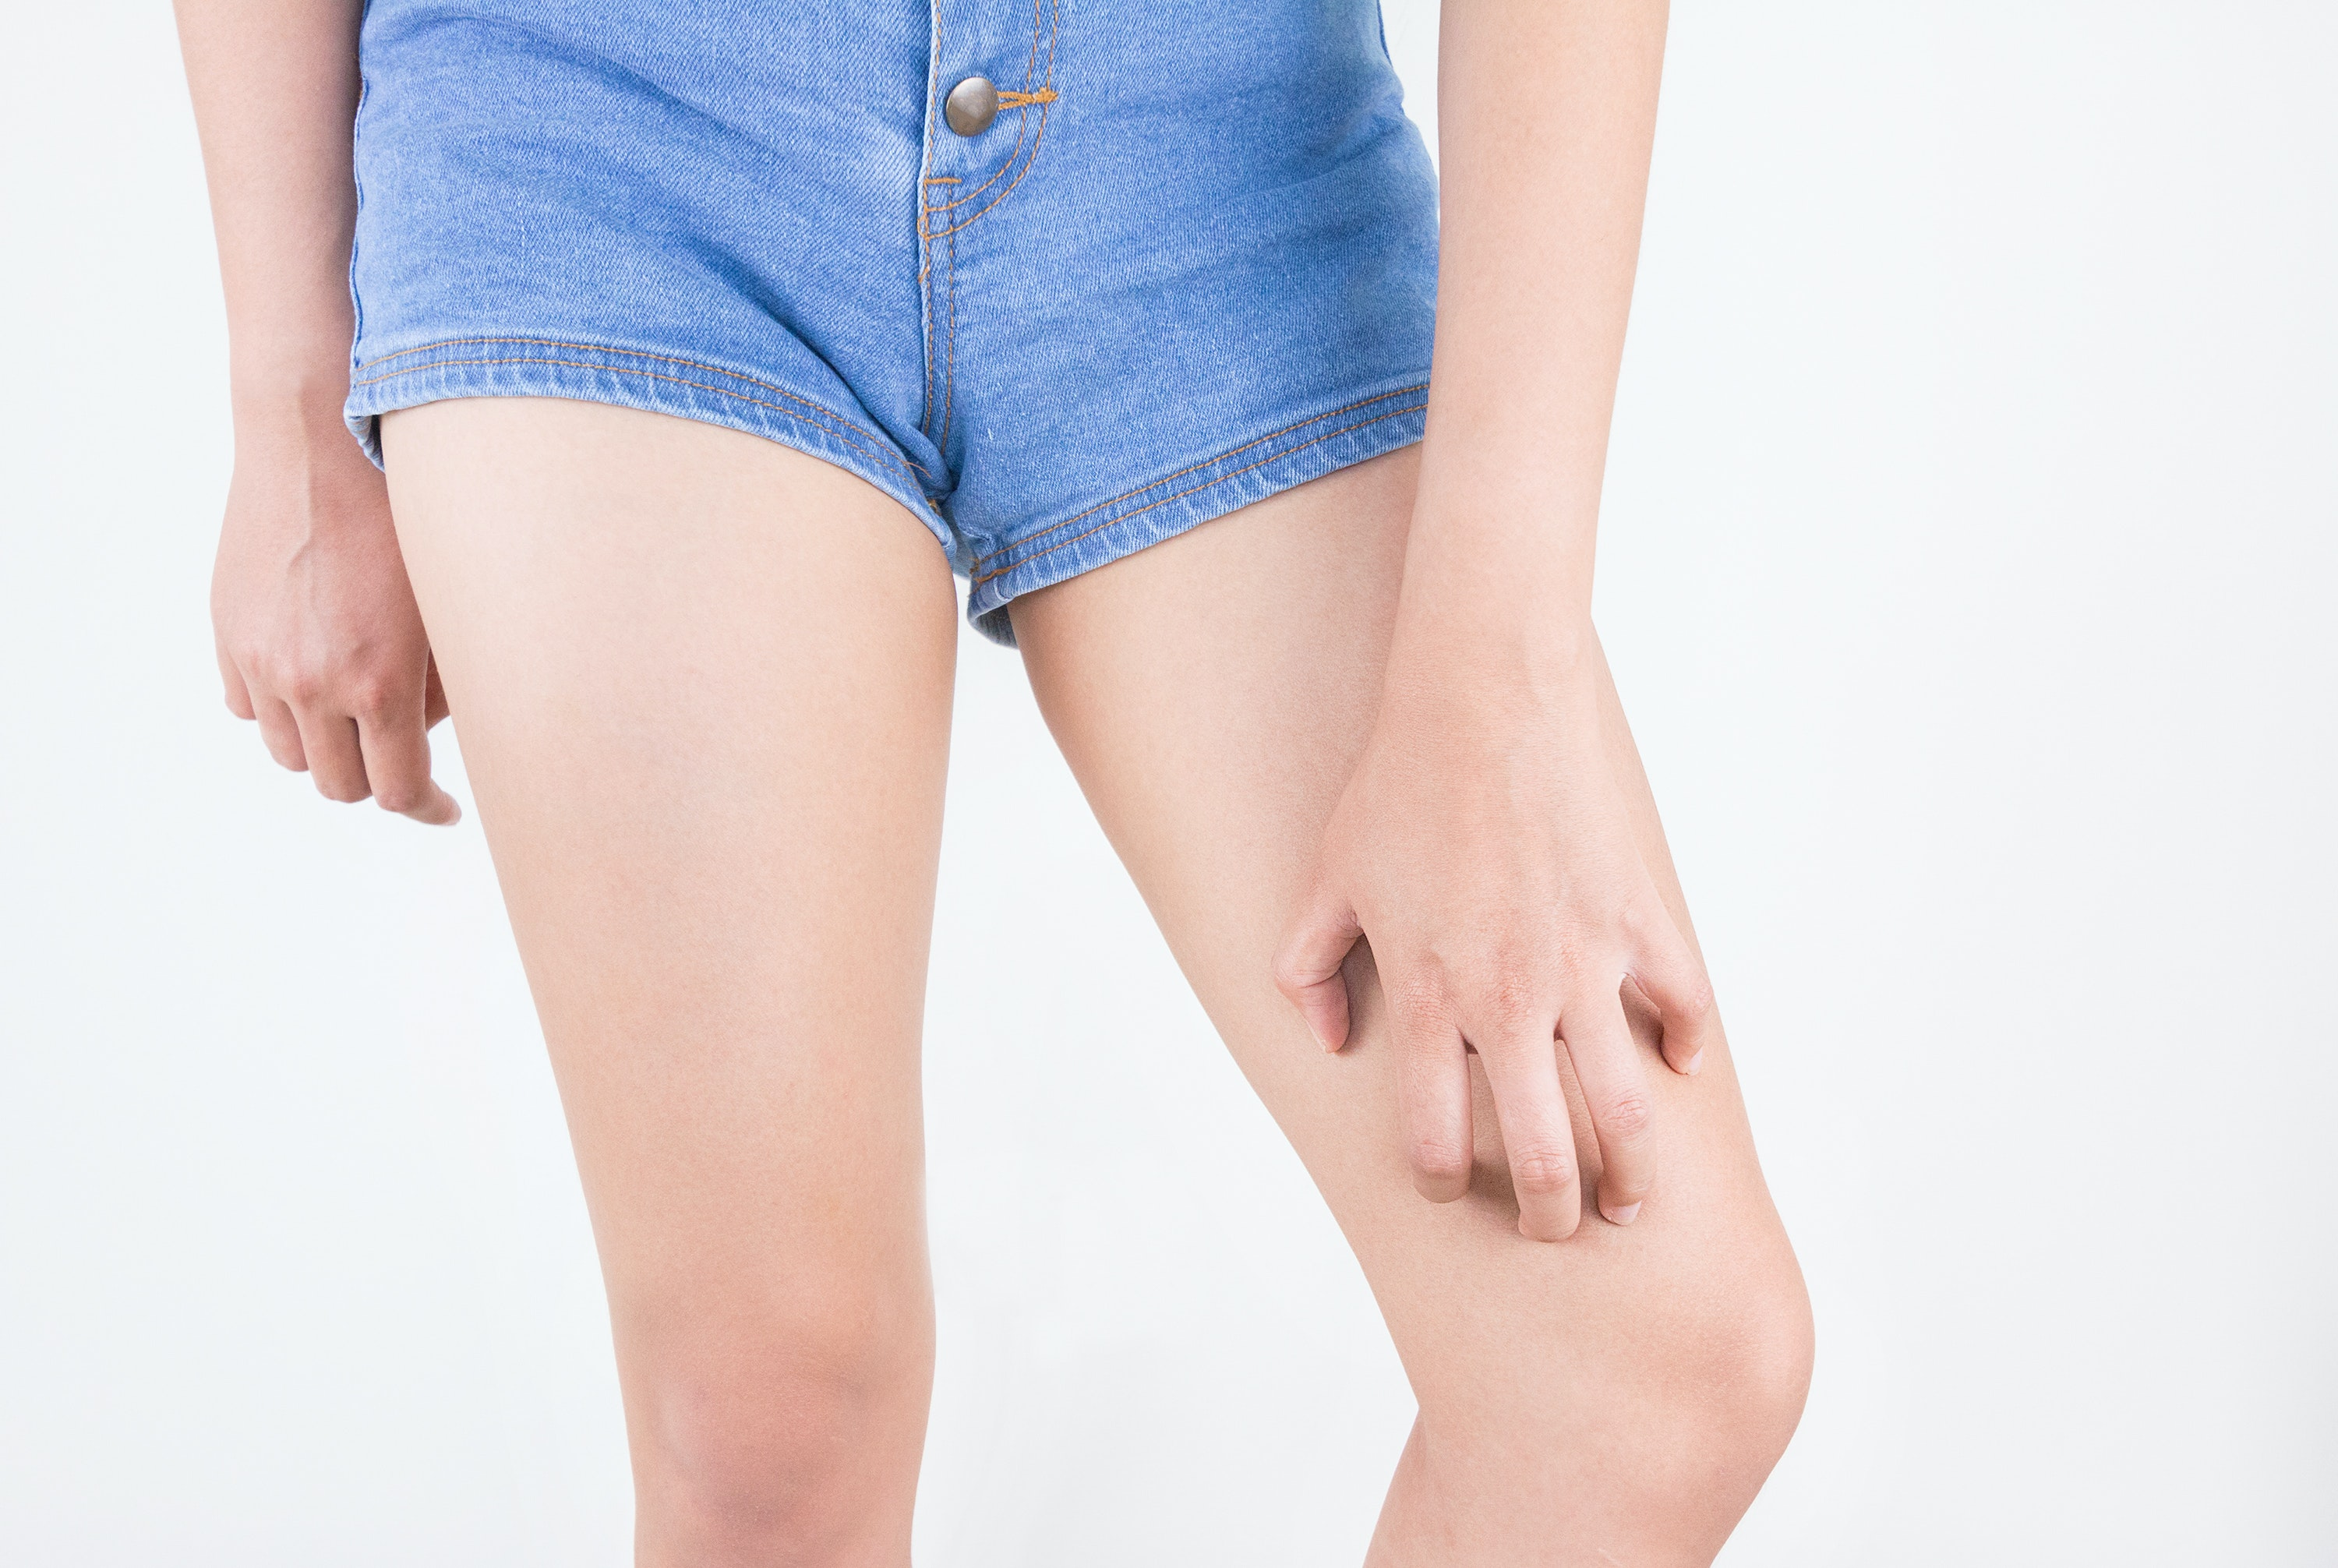 An image depicting a person suffering from upper leg itch symptoms